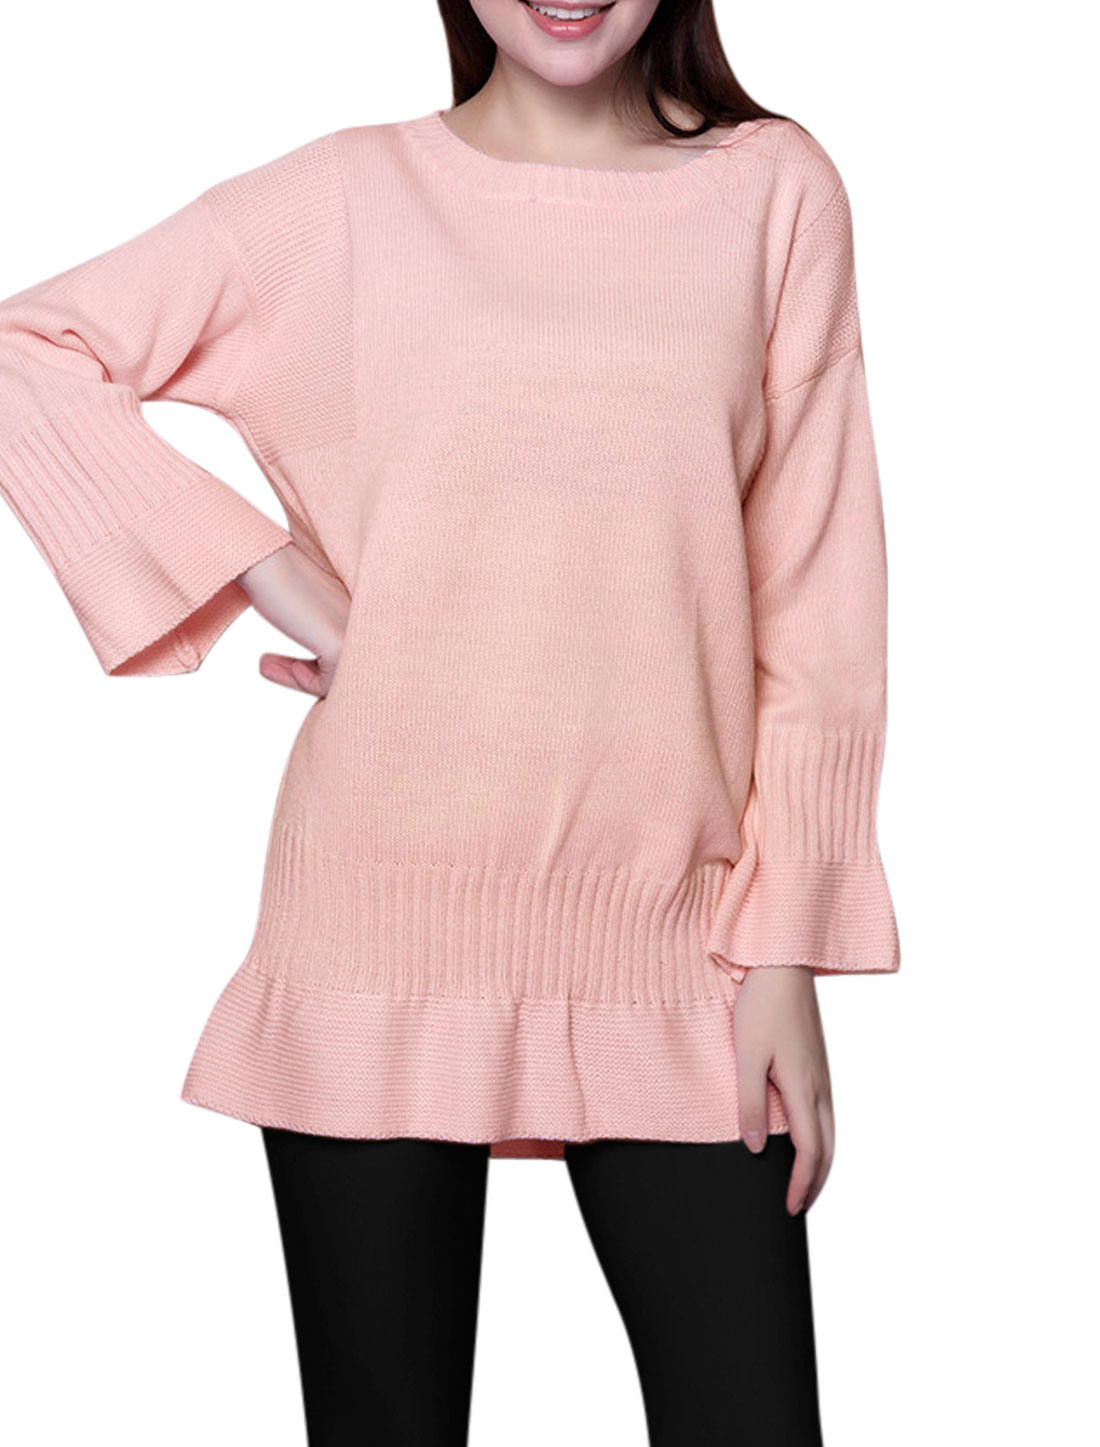 Women Long Sleeves Drop Shoulders Ribbed Flouncing Hem Knit Tunic Top Pink XS